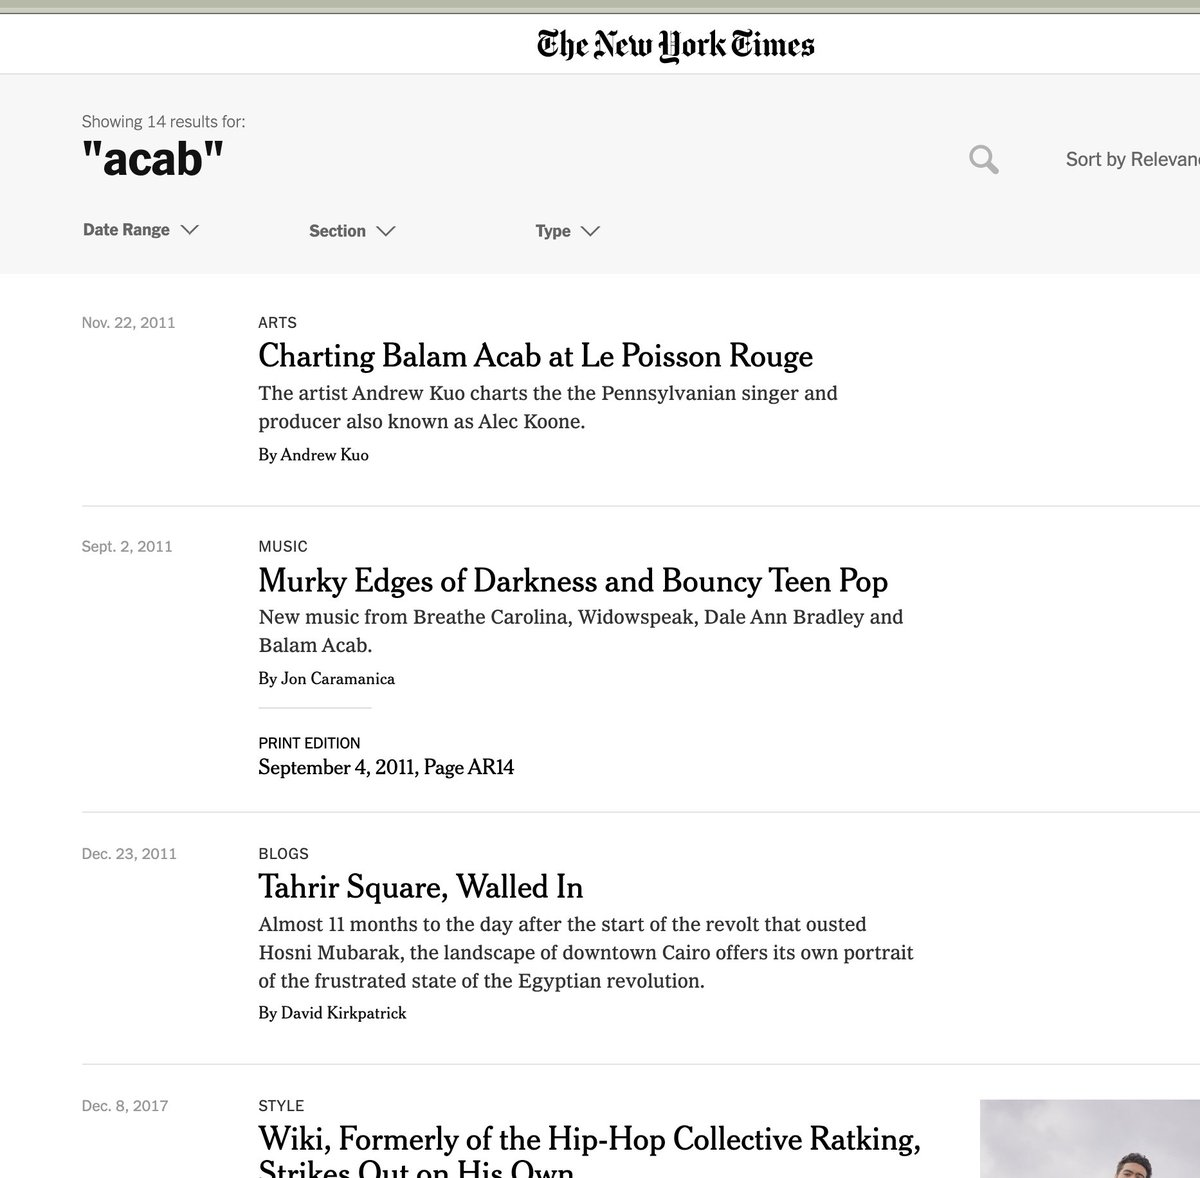 """@WillOremus @NYT_first_said @karenyhan also, it doesn't seem that its use today could be the literal first time the NYT has ever printed """"acab"""", since that is also the name of a musician the NYT has written about, Balam Acab, including at least 1 print article"""